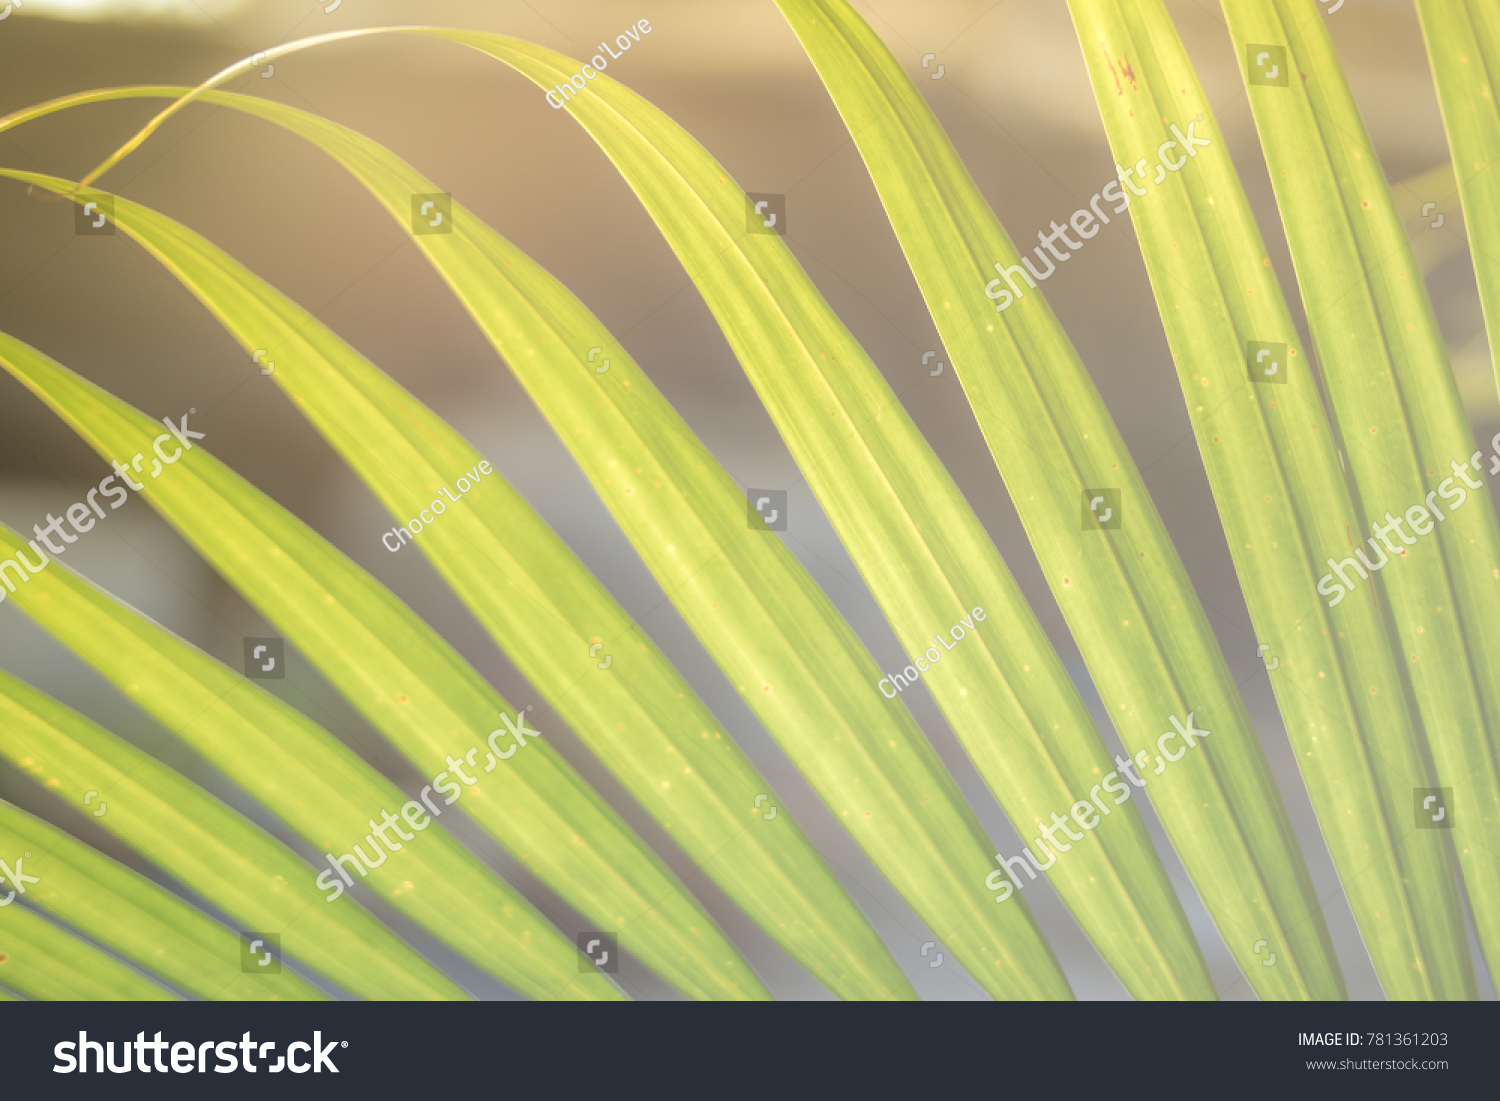 Chrysalidocarpus Space For Life Closeup Yallow Palm Chrysalidocarpus Lutescens Leaves Stock Photo